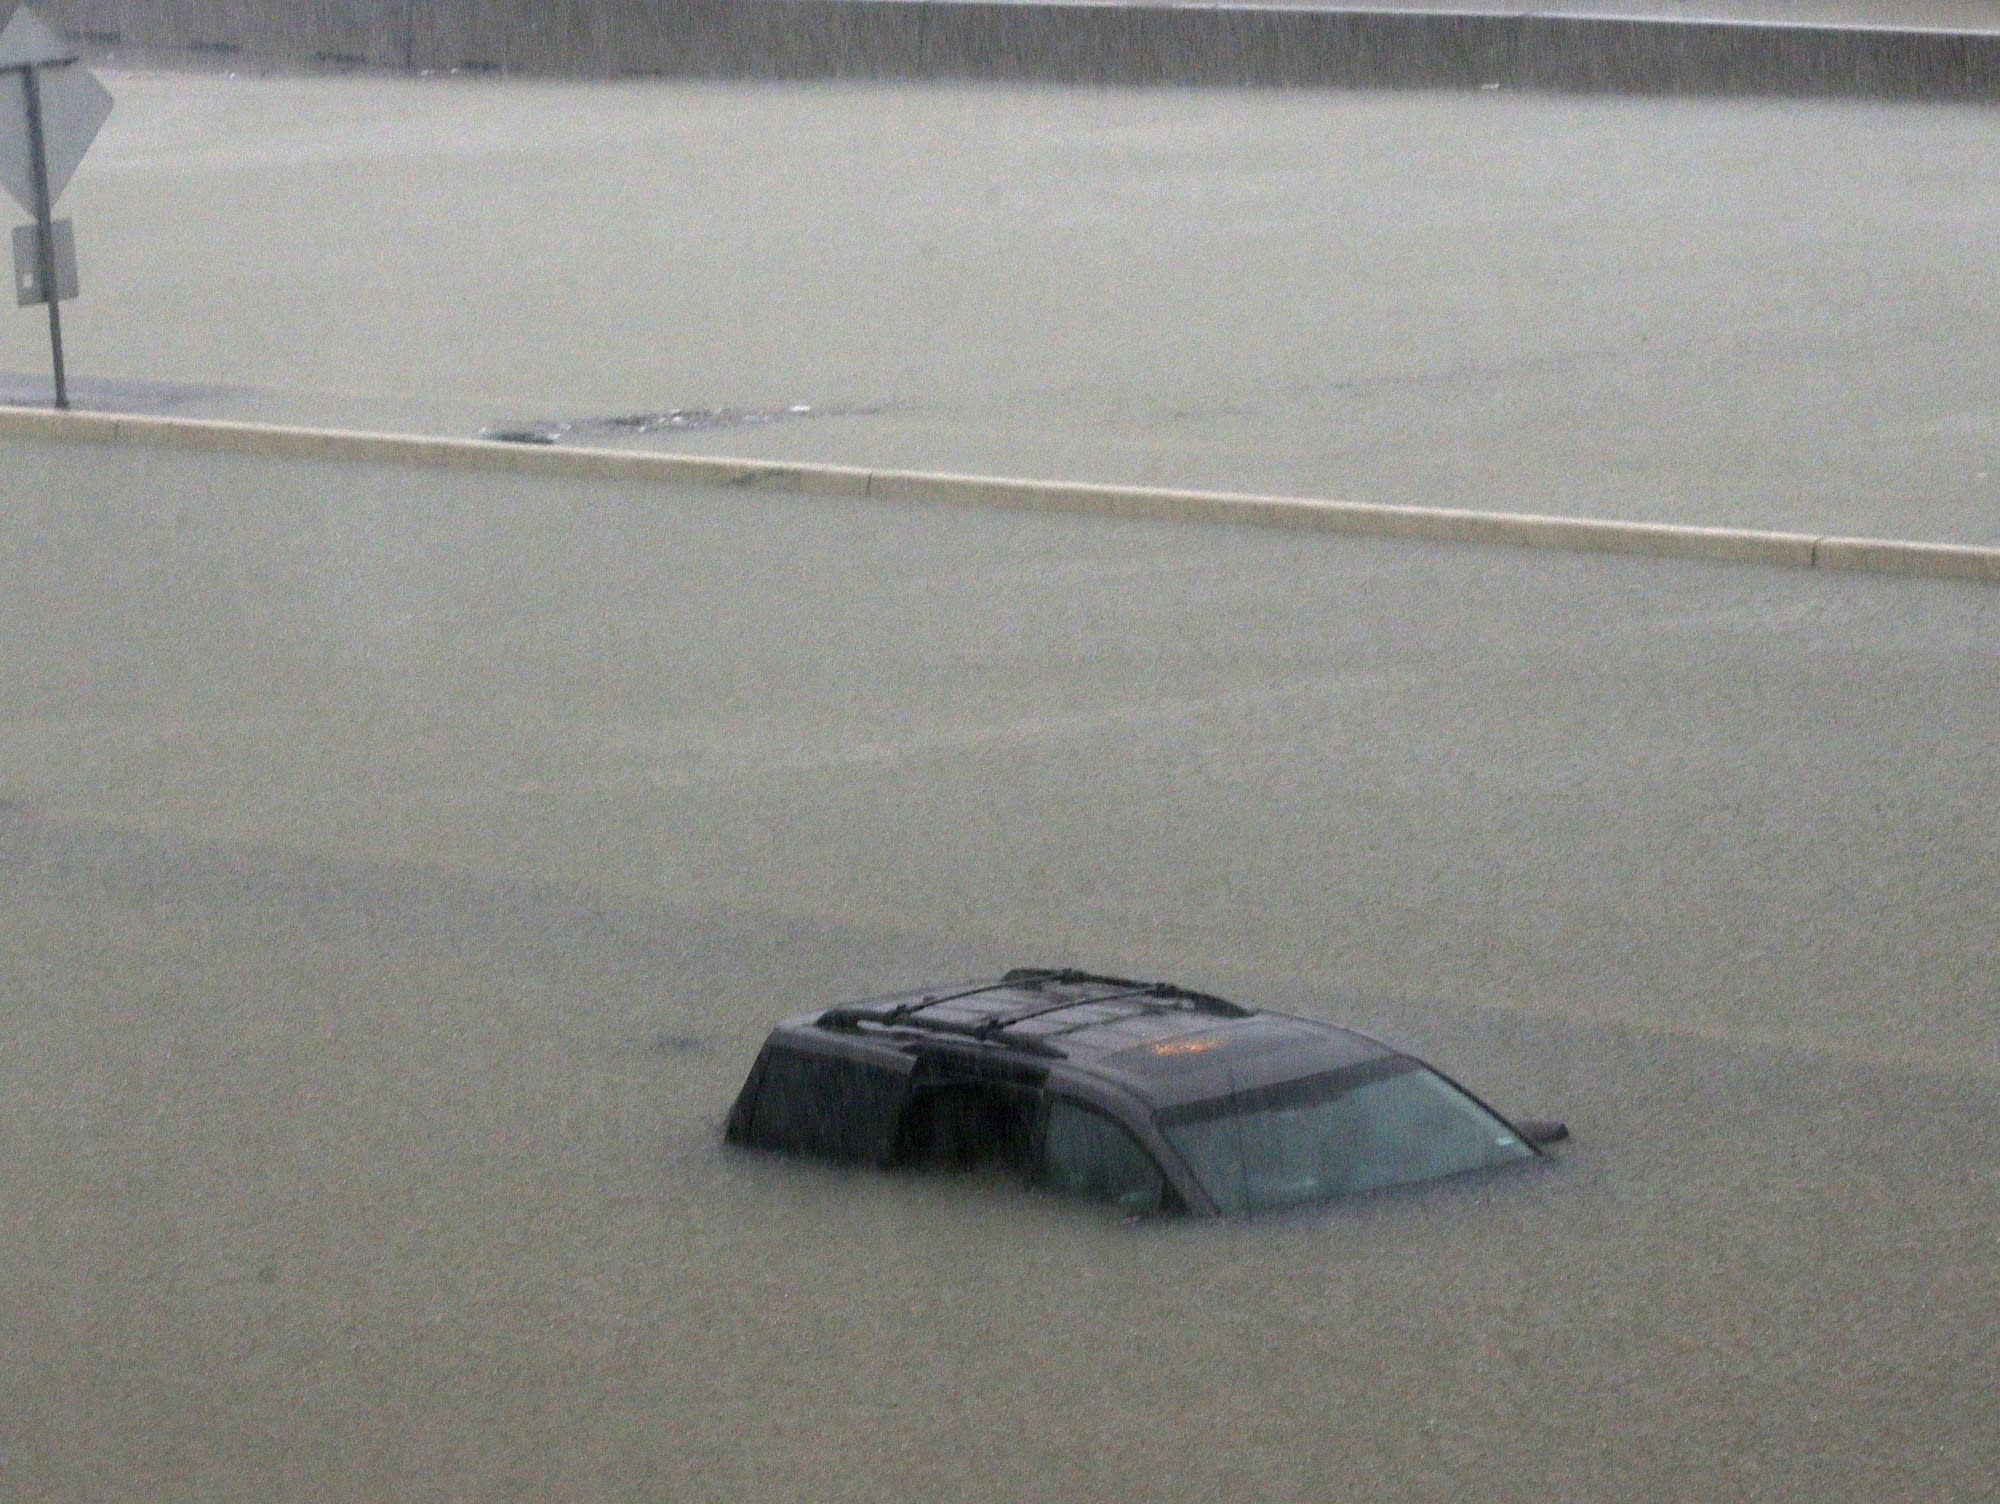 An abandoned vehicle sits in flood waters on the I-10 highway